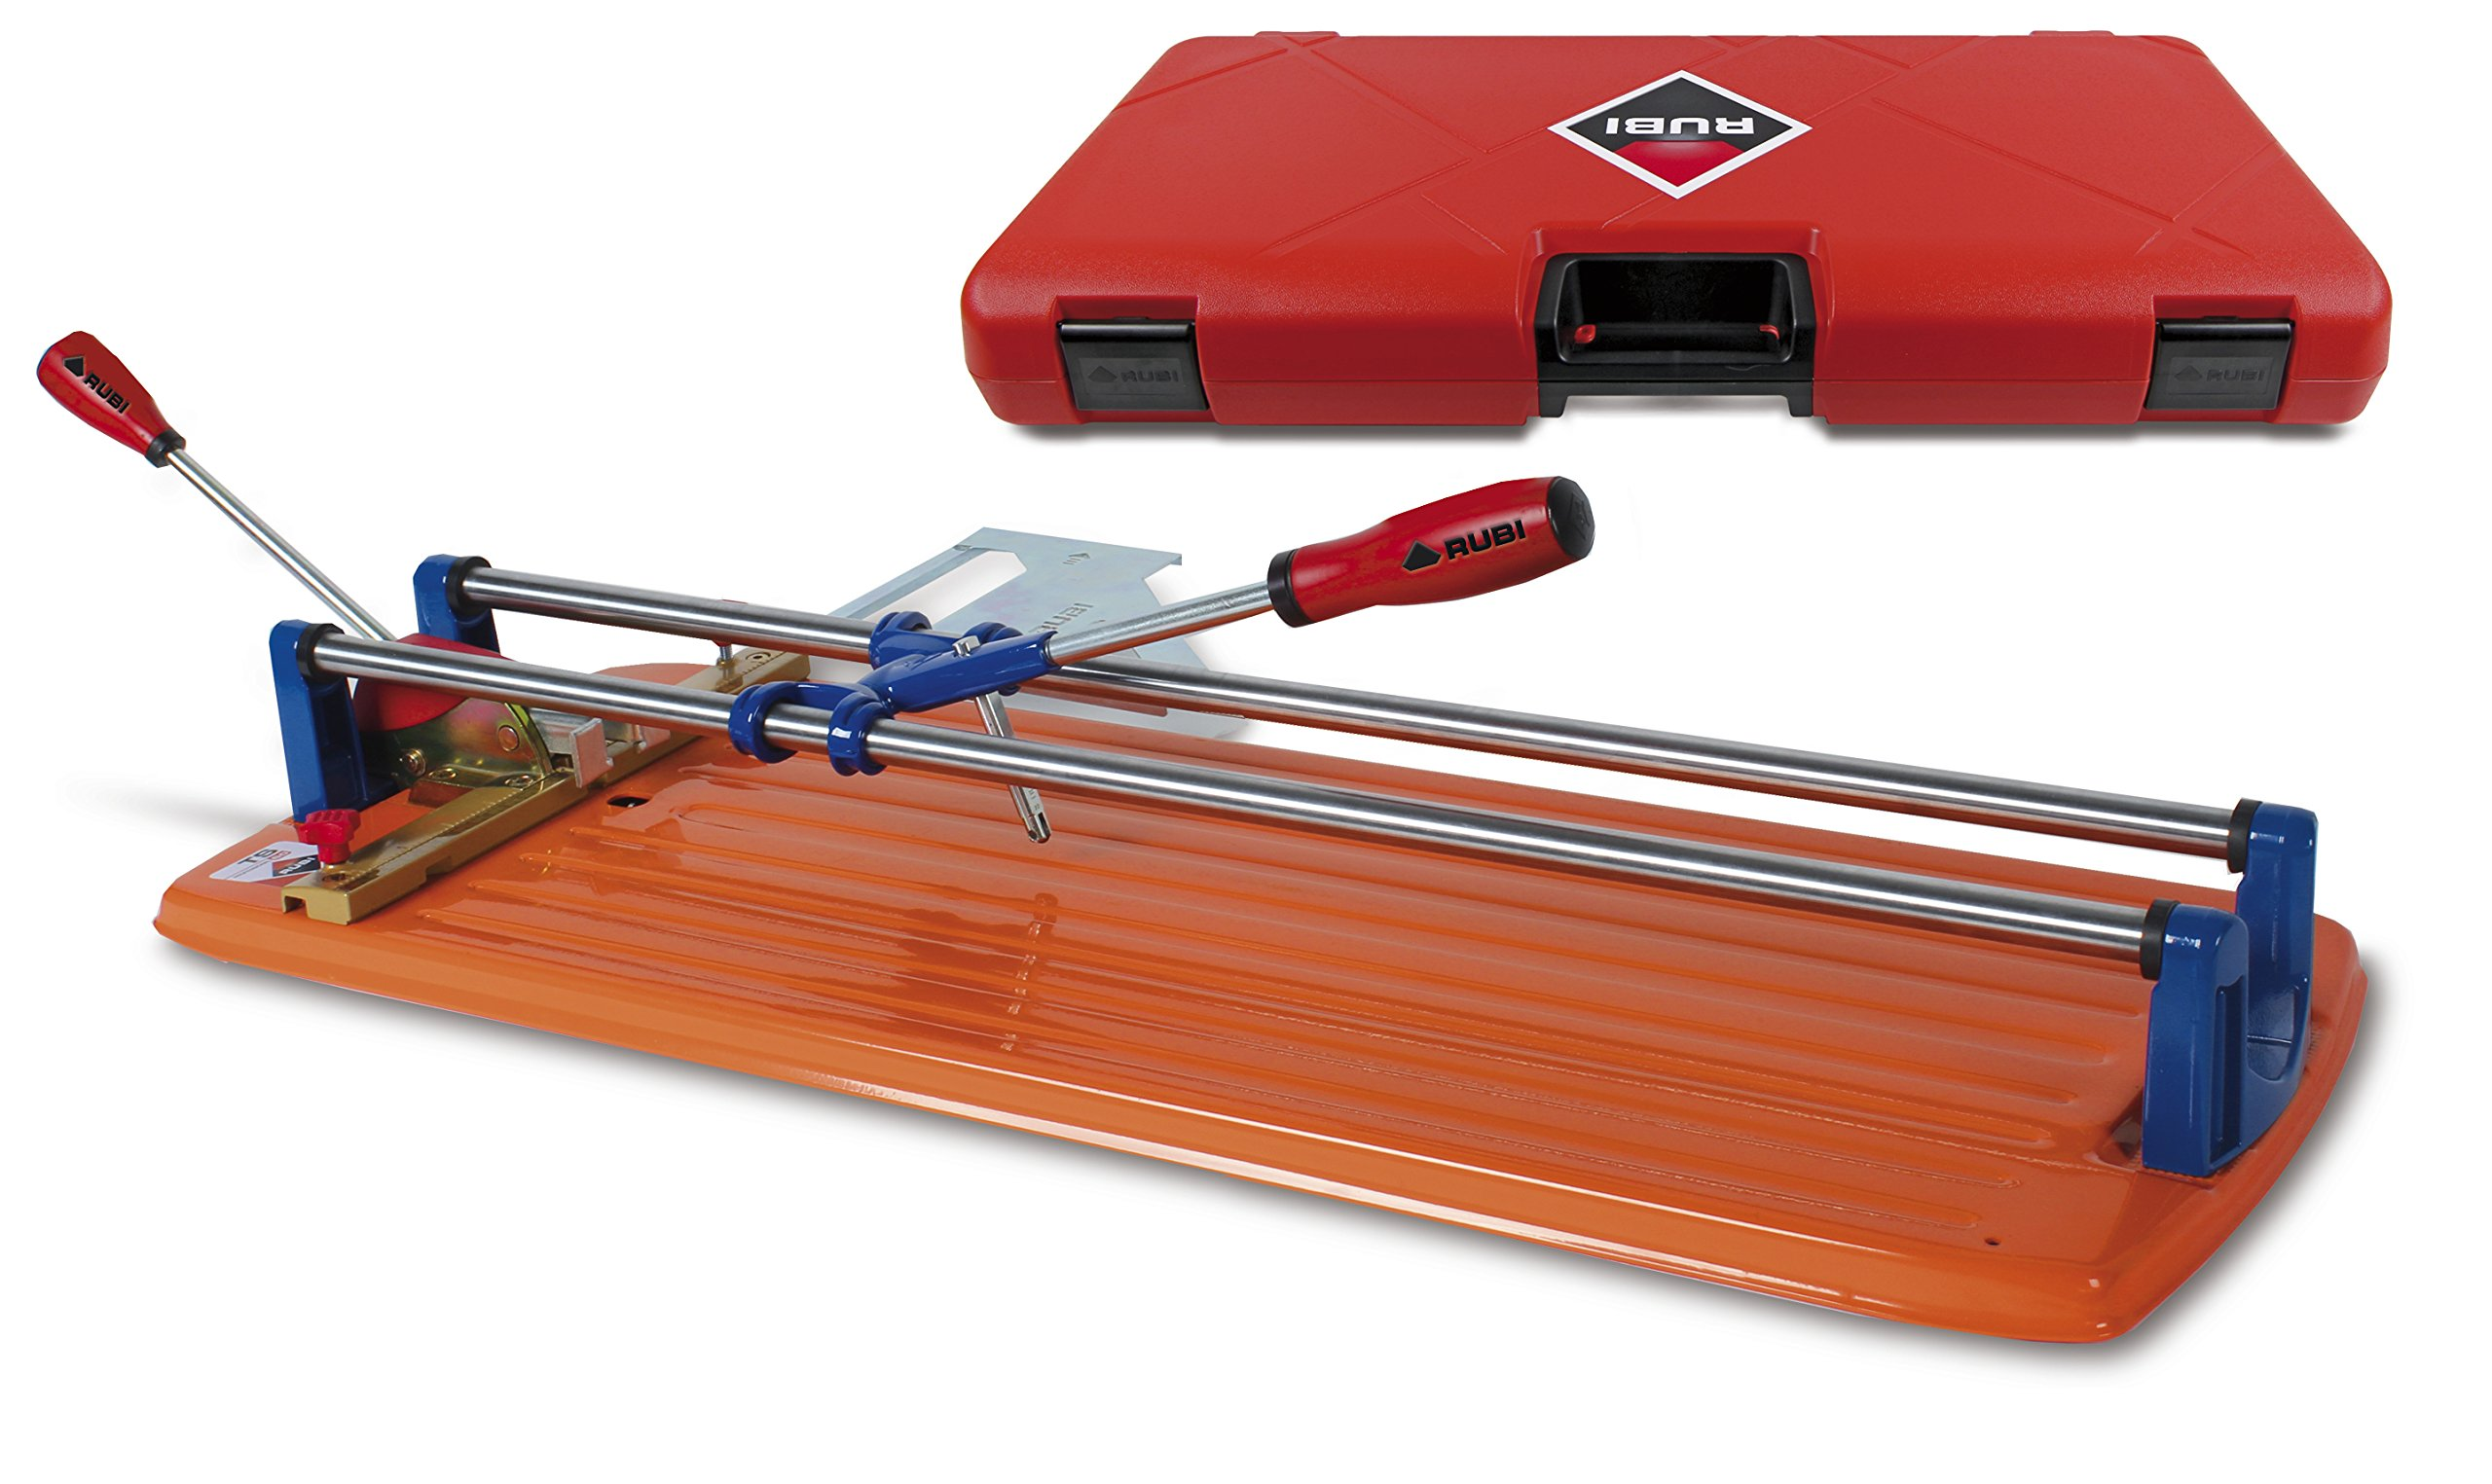 Rubi TS-66 Tile Cutter 26-Inch with Red Case